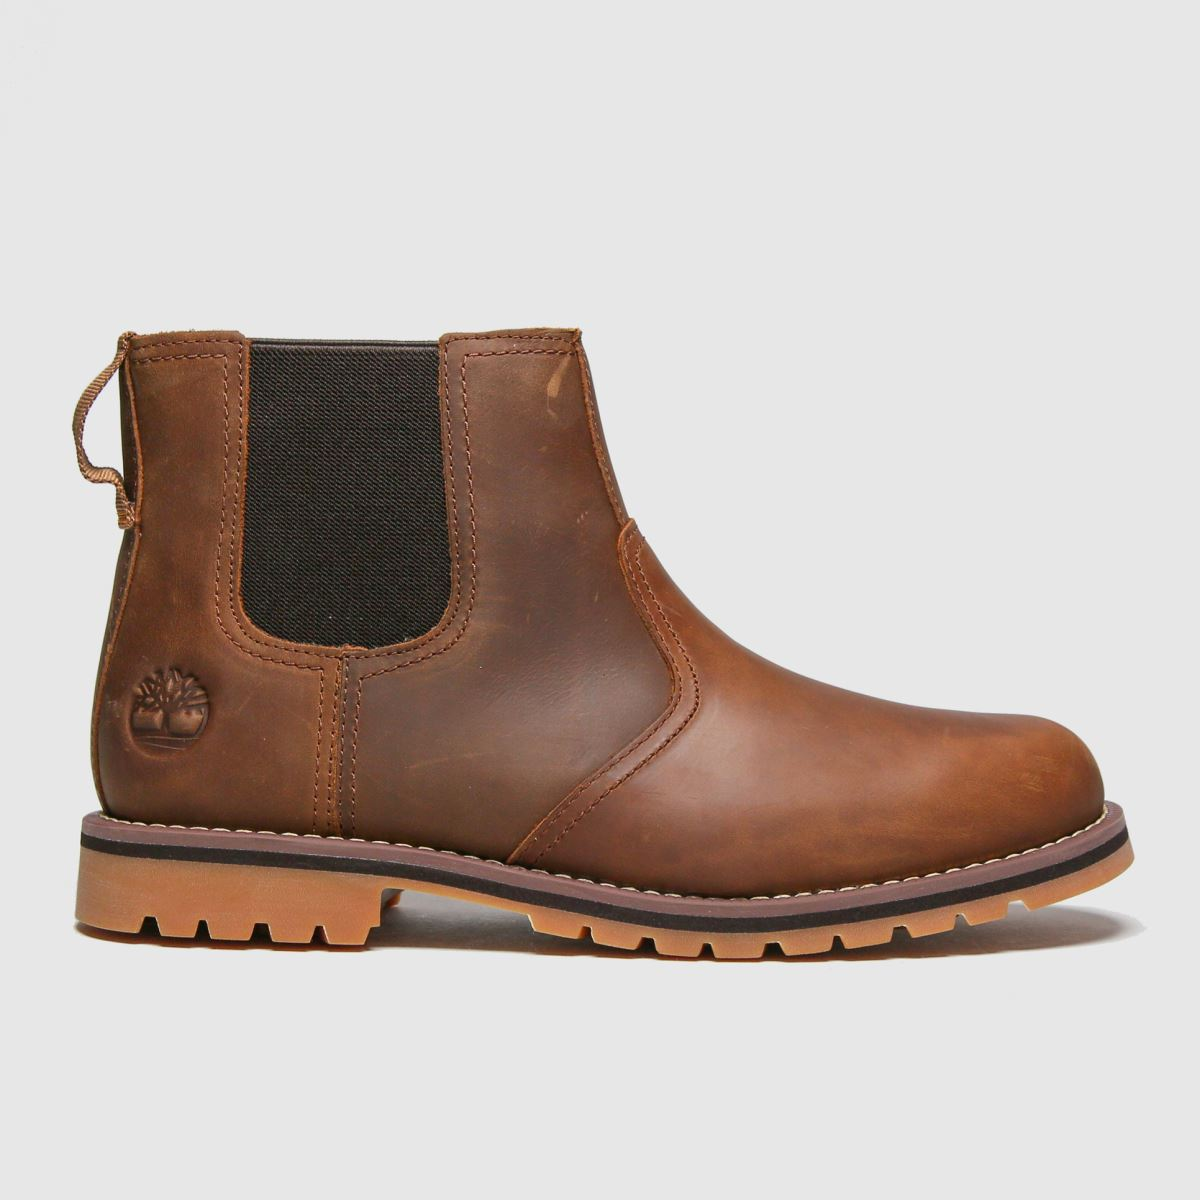 Timberland Tan Larchmont Ii Chelsea Boots